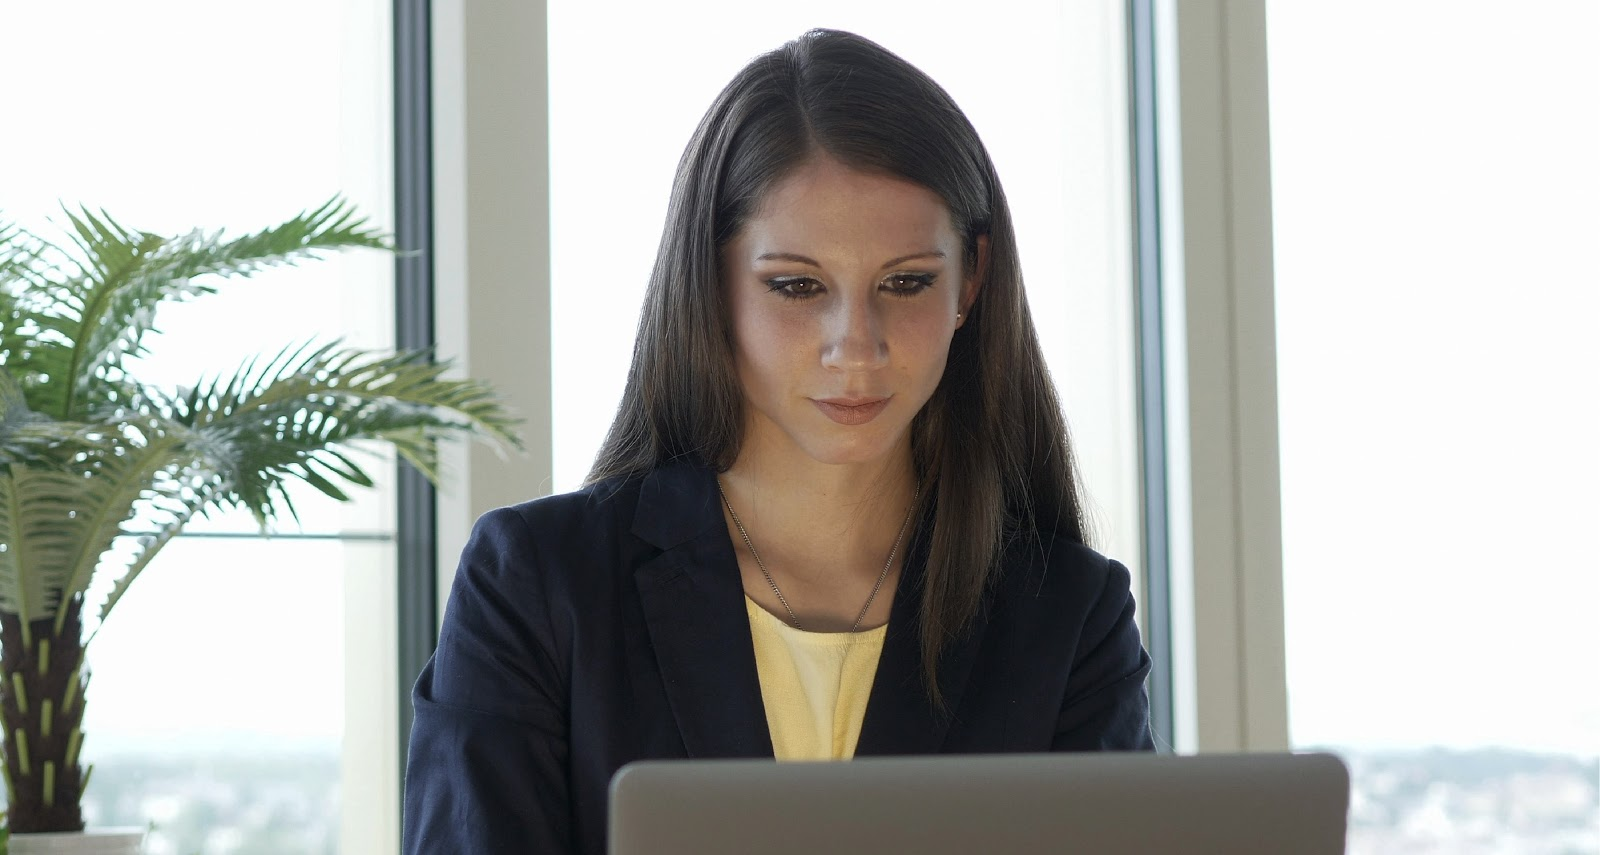 woman searching online with a serious look